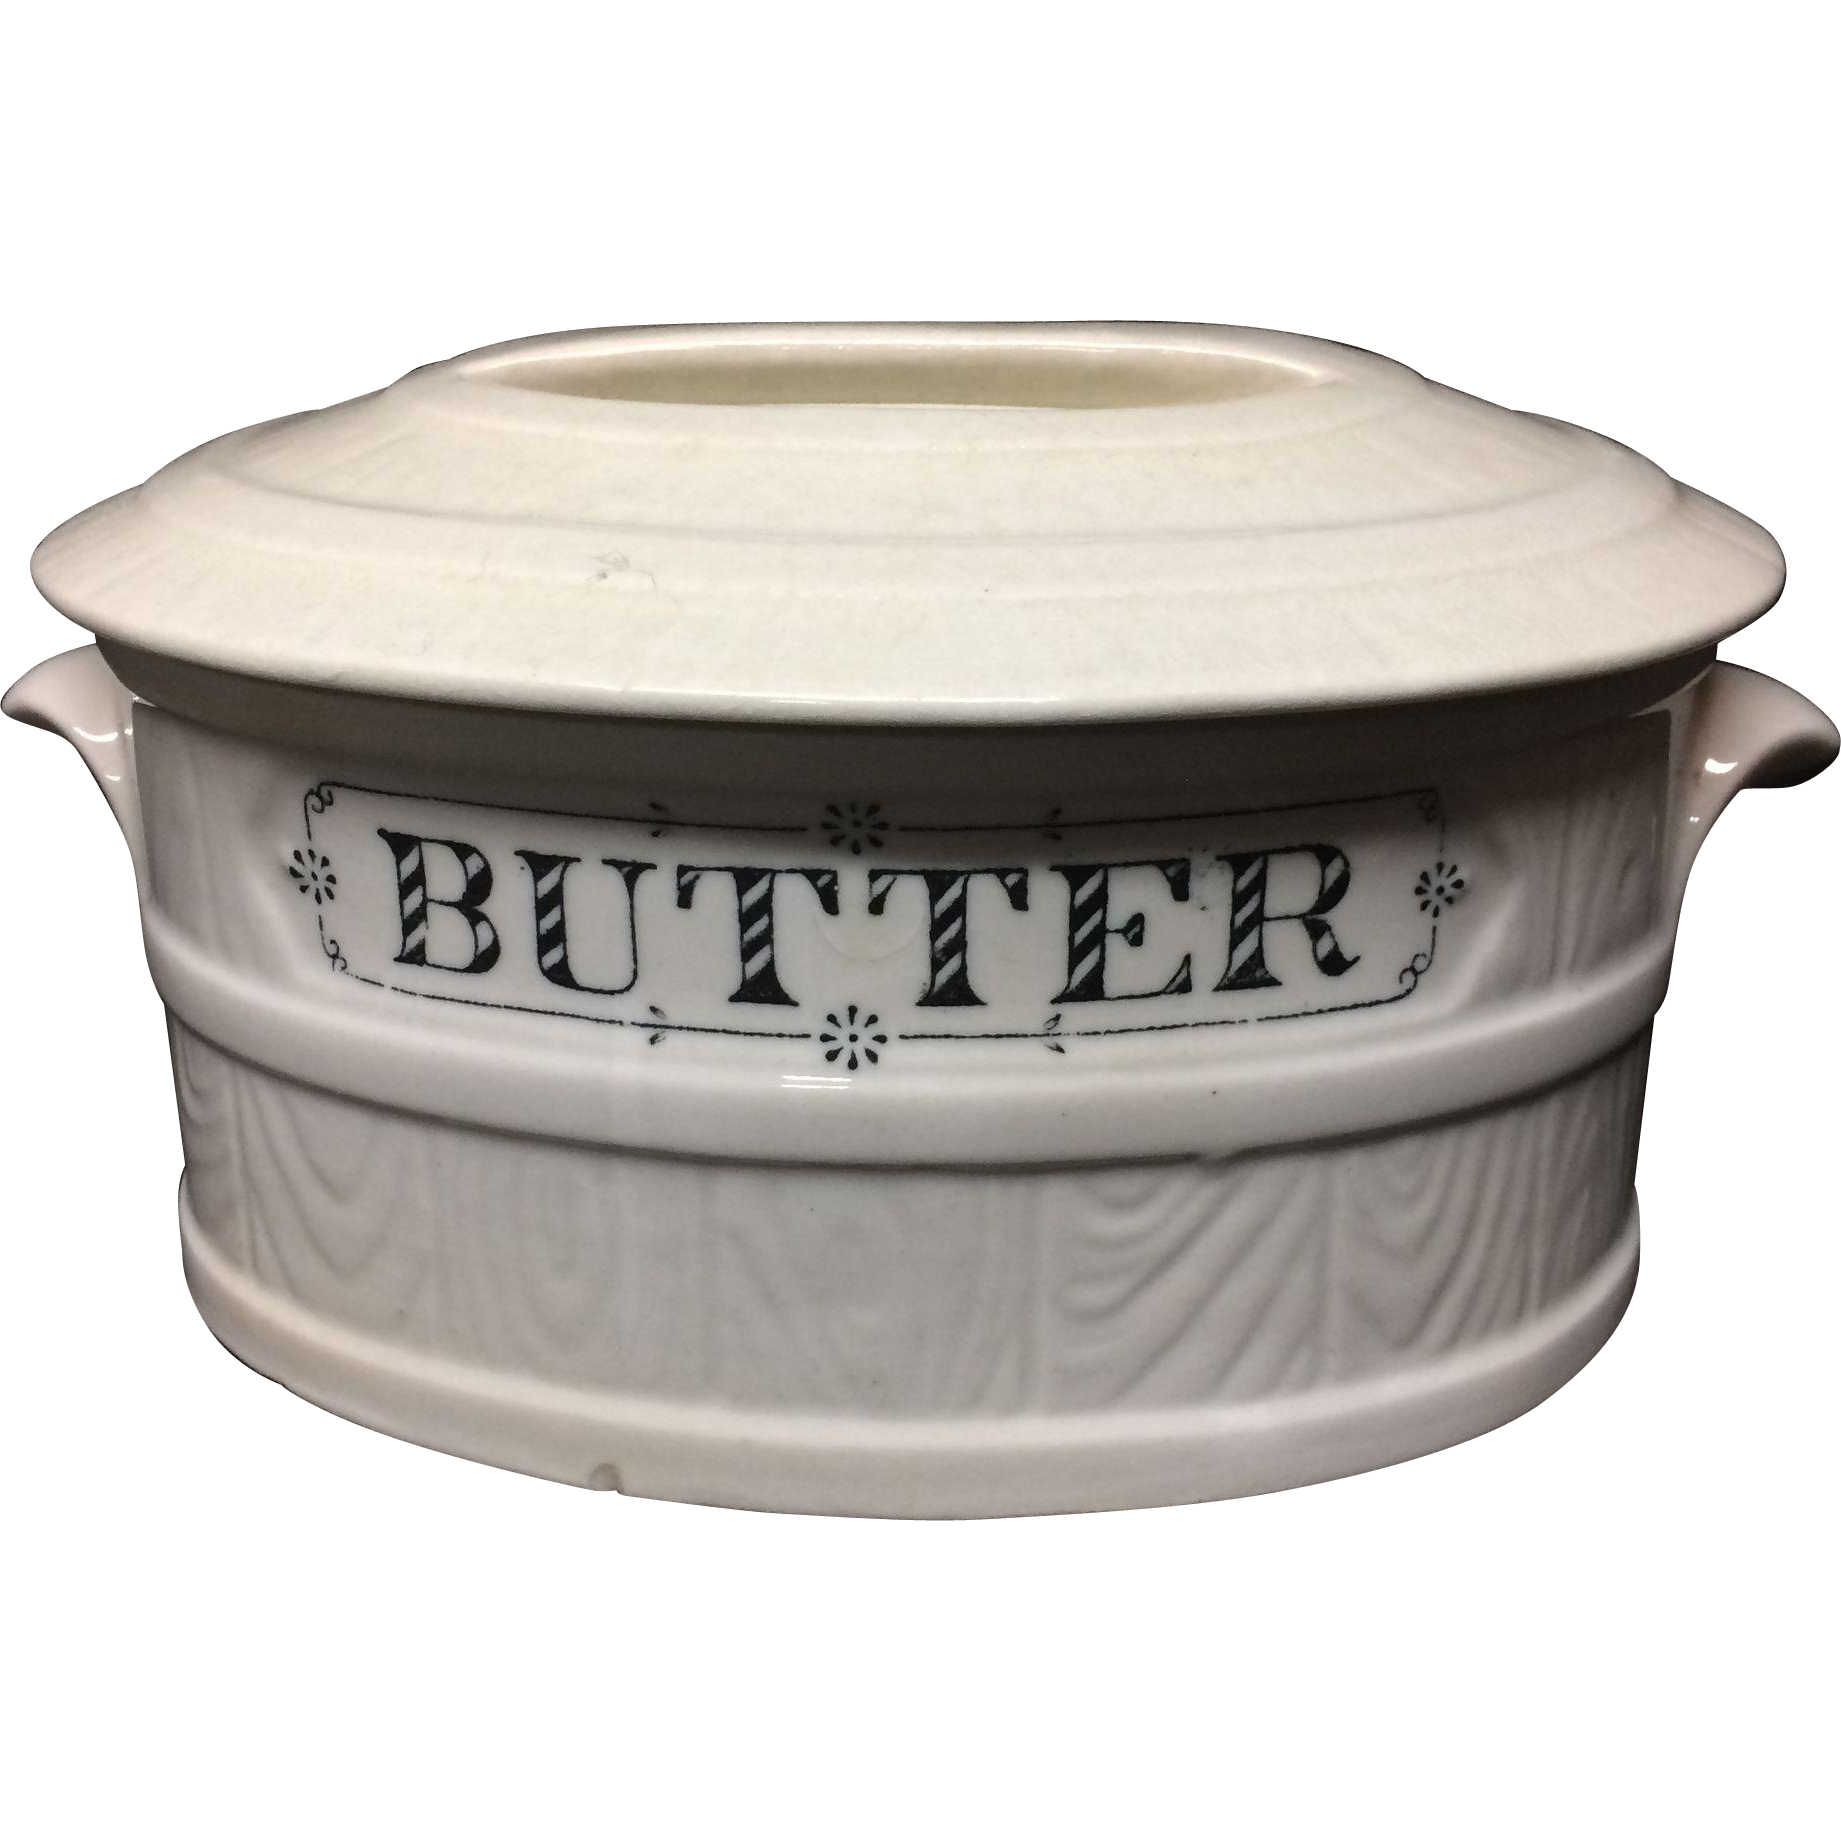 English Ironstone Oval PURE BUTTER Dairy Shop Tub c1900